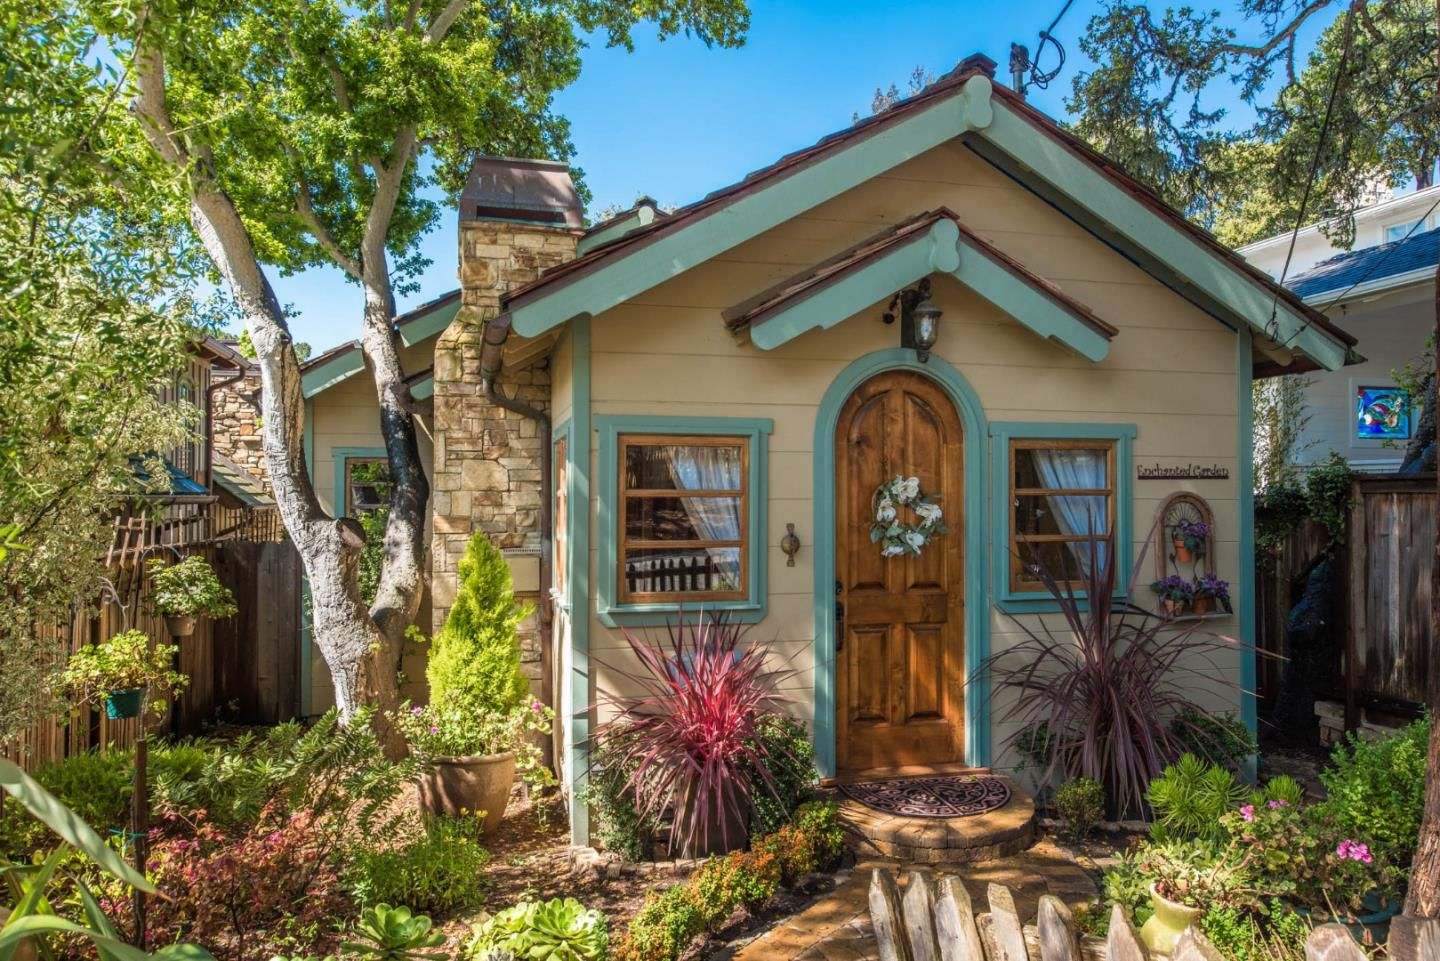 The-most-adorable-cottage-in-Carmel-is-small-with-large-space-Arched-front-door-and-teal-trim..jpg